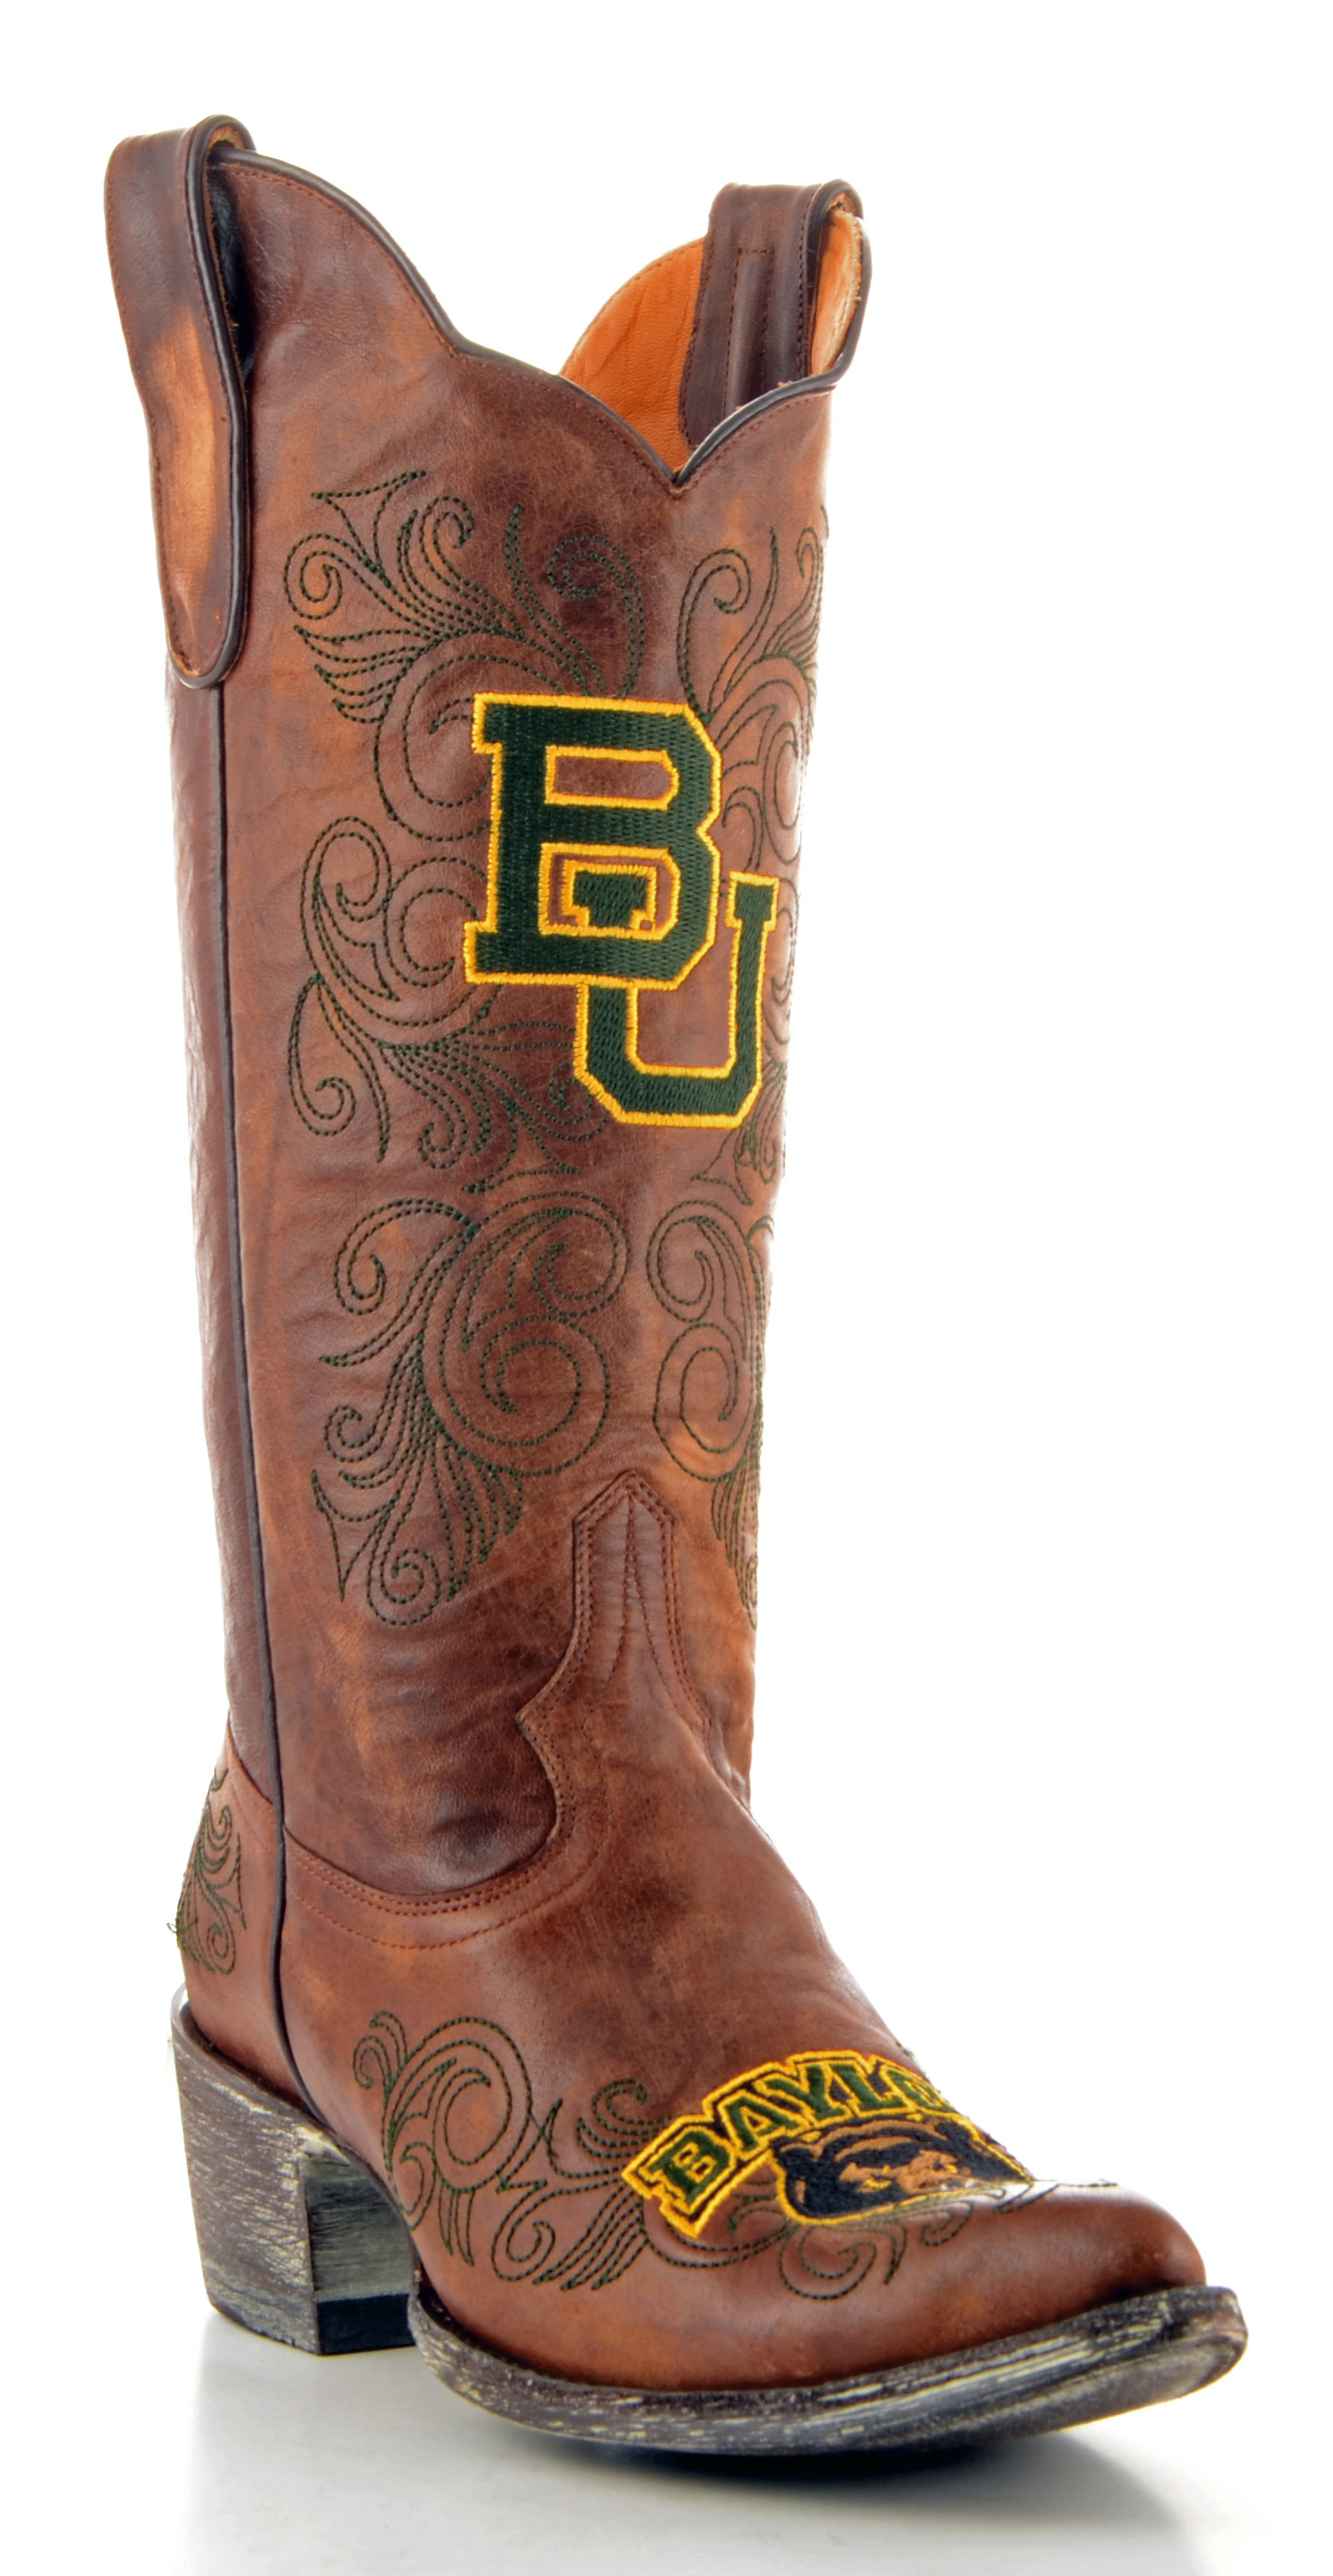 "Women's Tan Baylor Bears 13"" Embroidered Boots by GameDay Boots"